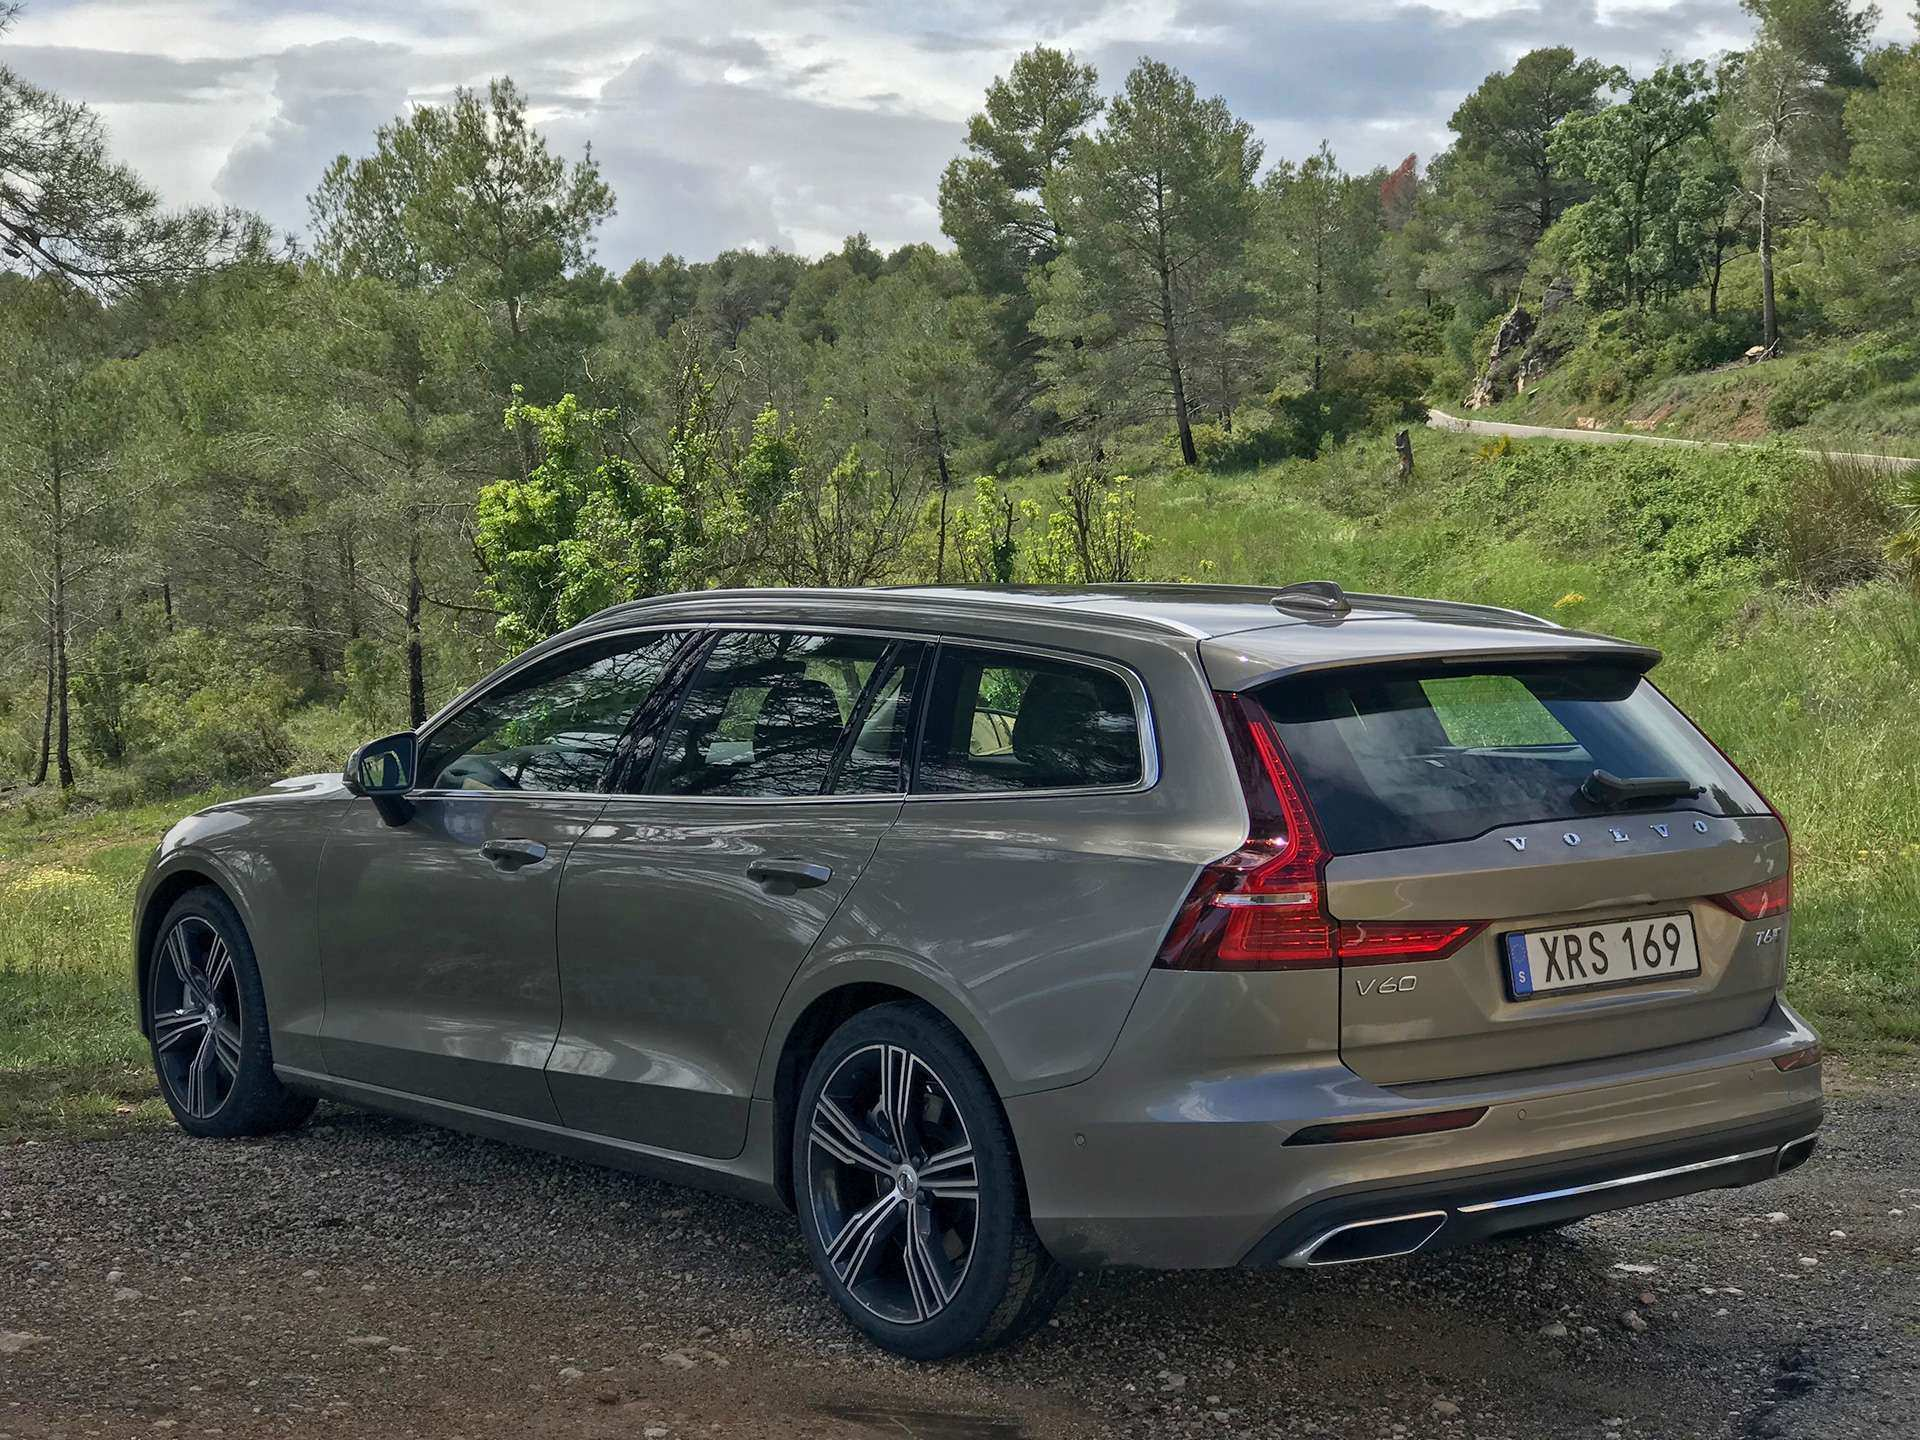 42 A 2019 Volvo V70 Exterior And Interior